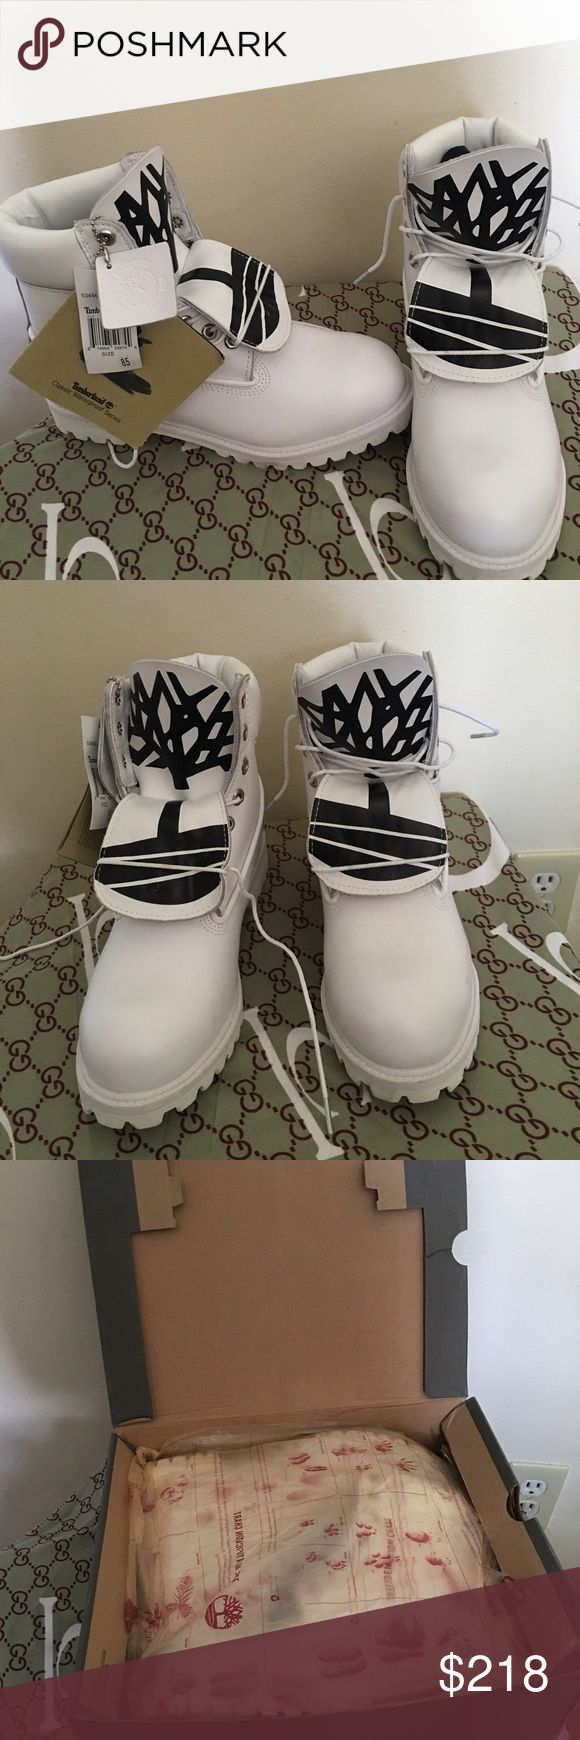 White Timberland boots Size 9 men Timberland Shoes Boots